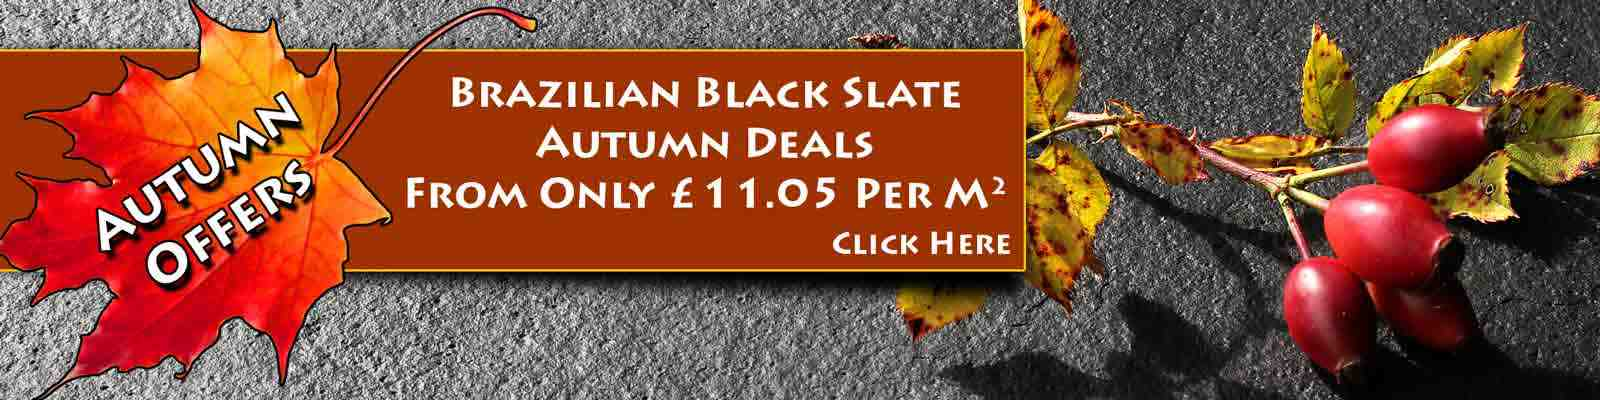 Brazilian Black Slate October Bargain